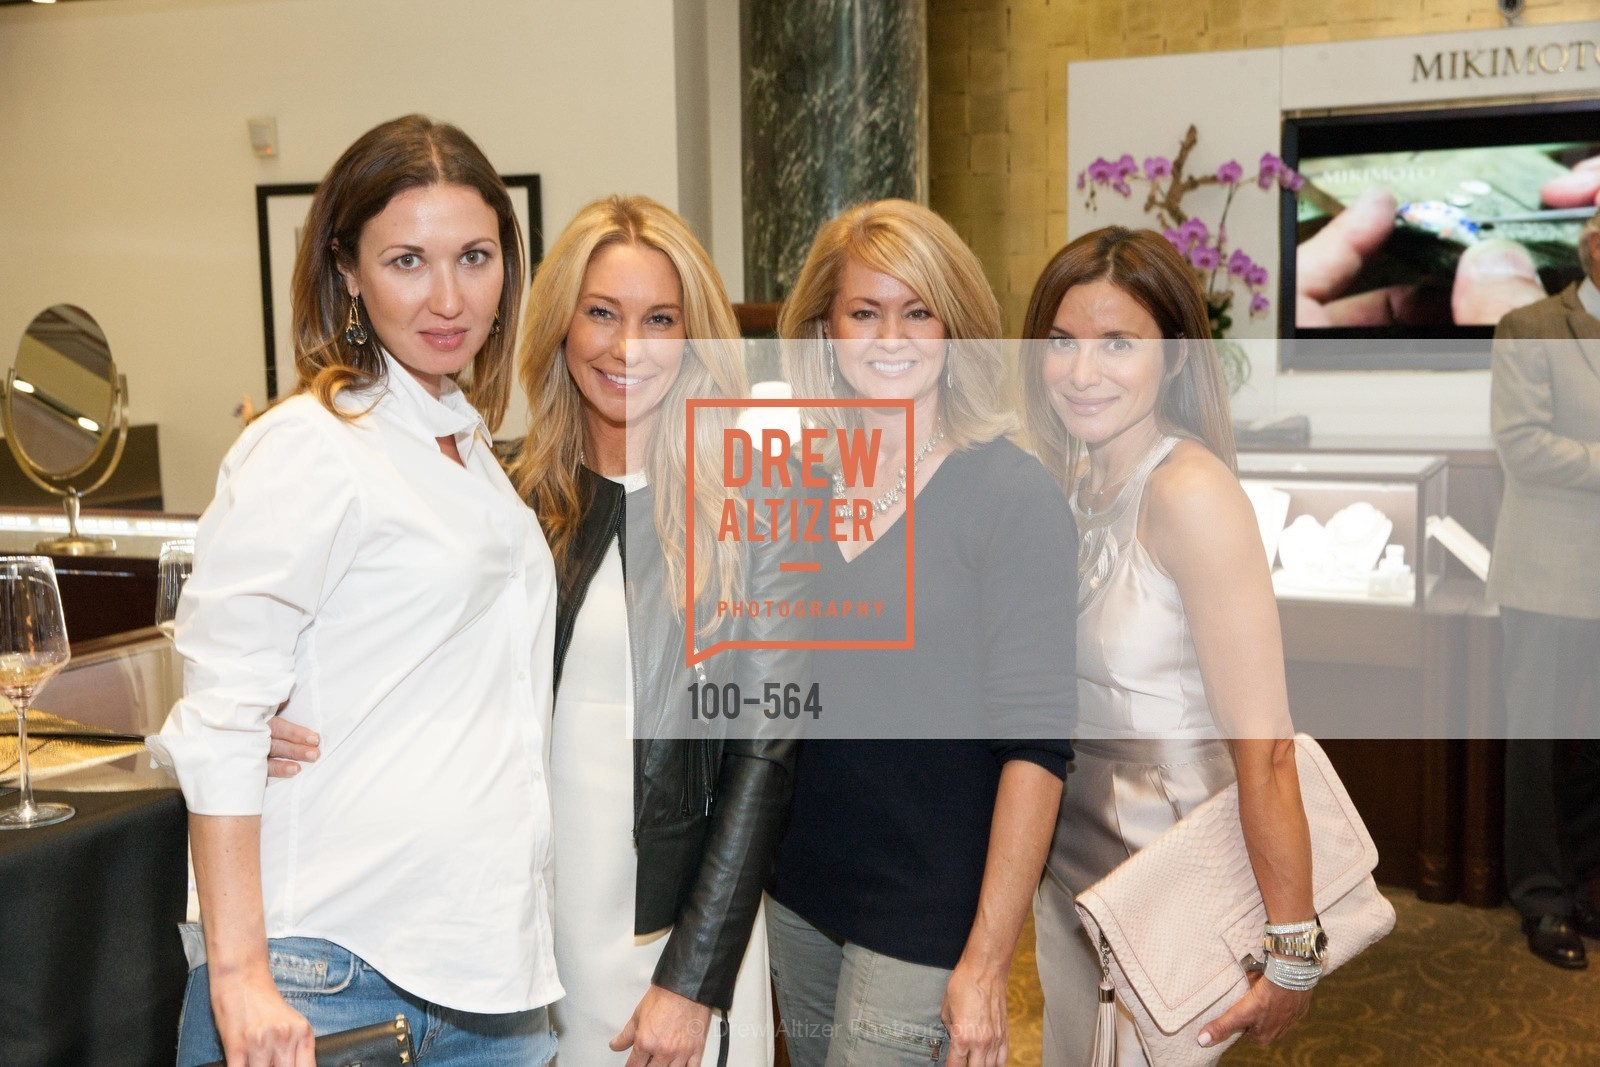 Camilla Papale, Tiffany Cummins, Sue Chrispell, Claudia Ross, SHREVE & CO. Hosts AMERICAN CANCER SOCIETY BENEFIT, US, September 10th, 2014,Drew Altizer, Drew Altizer Photography, full-service agency, private events, San Francisco photographer, photographer california